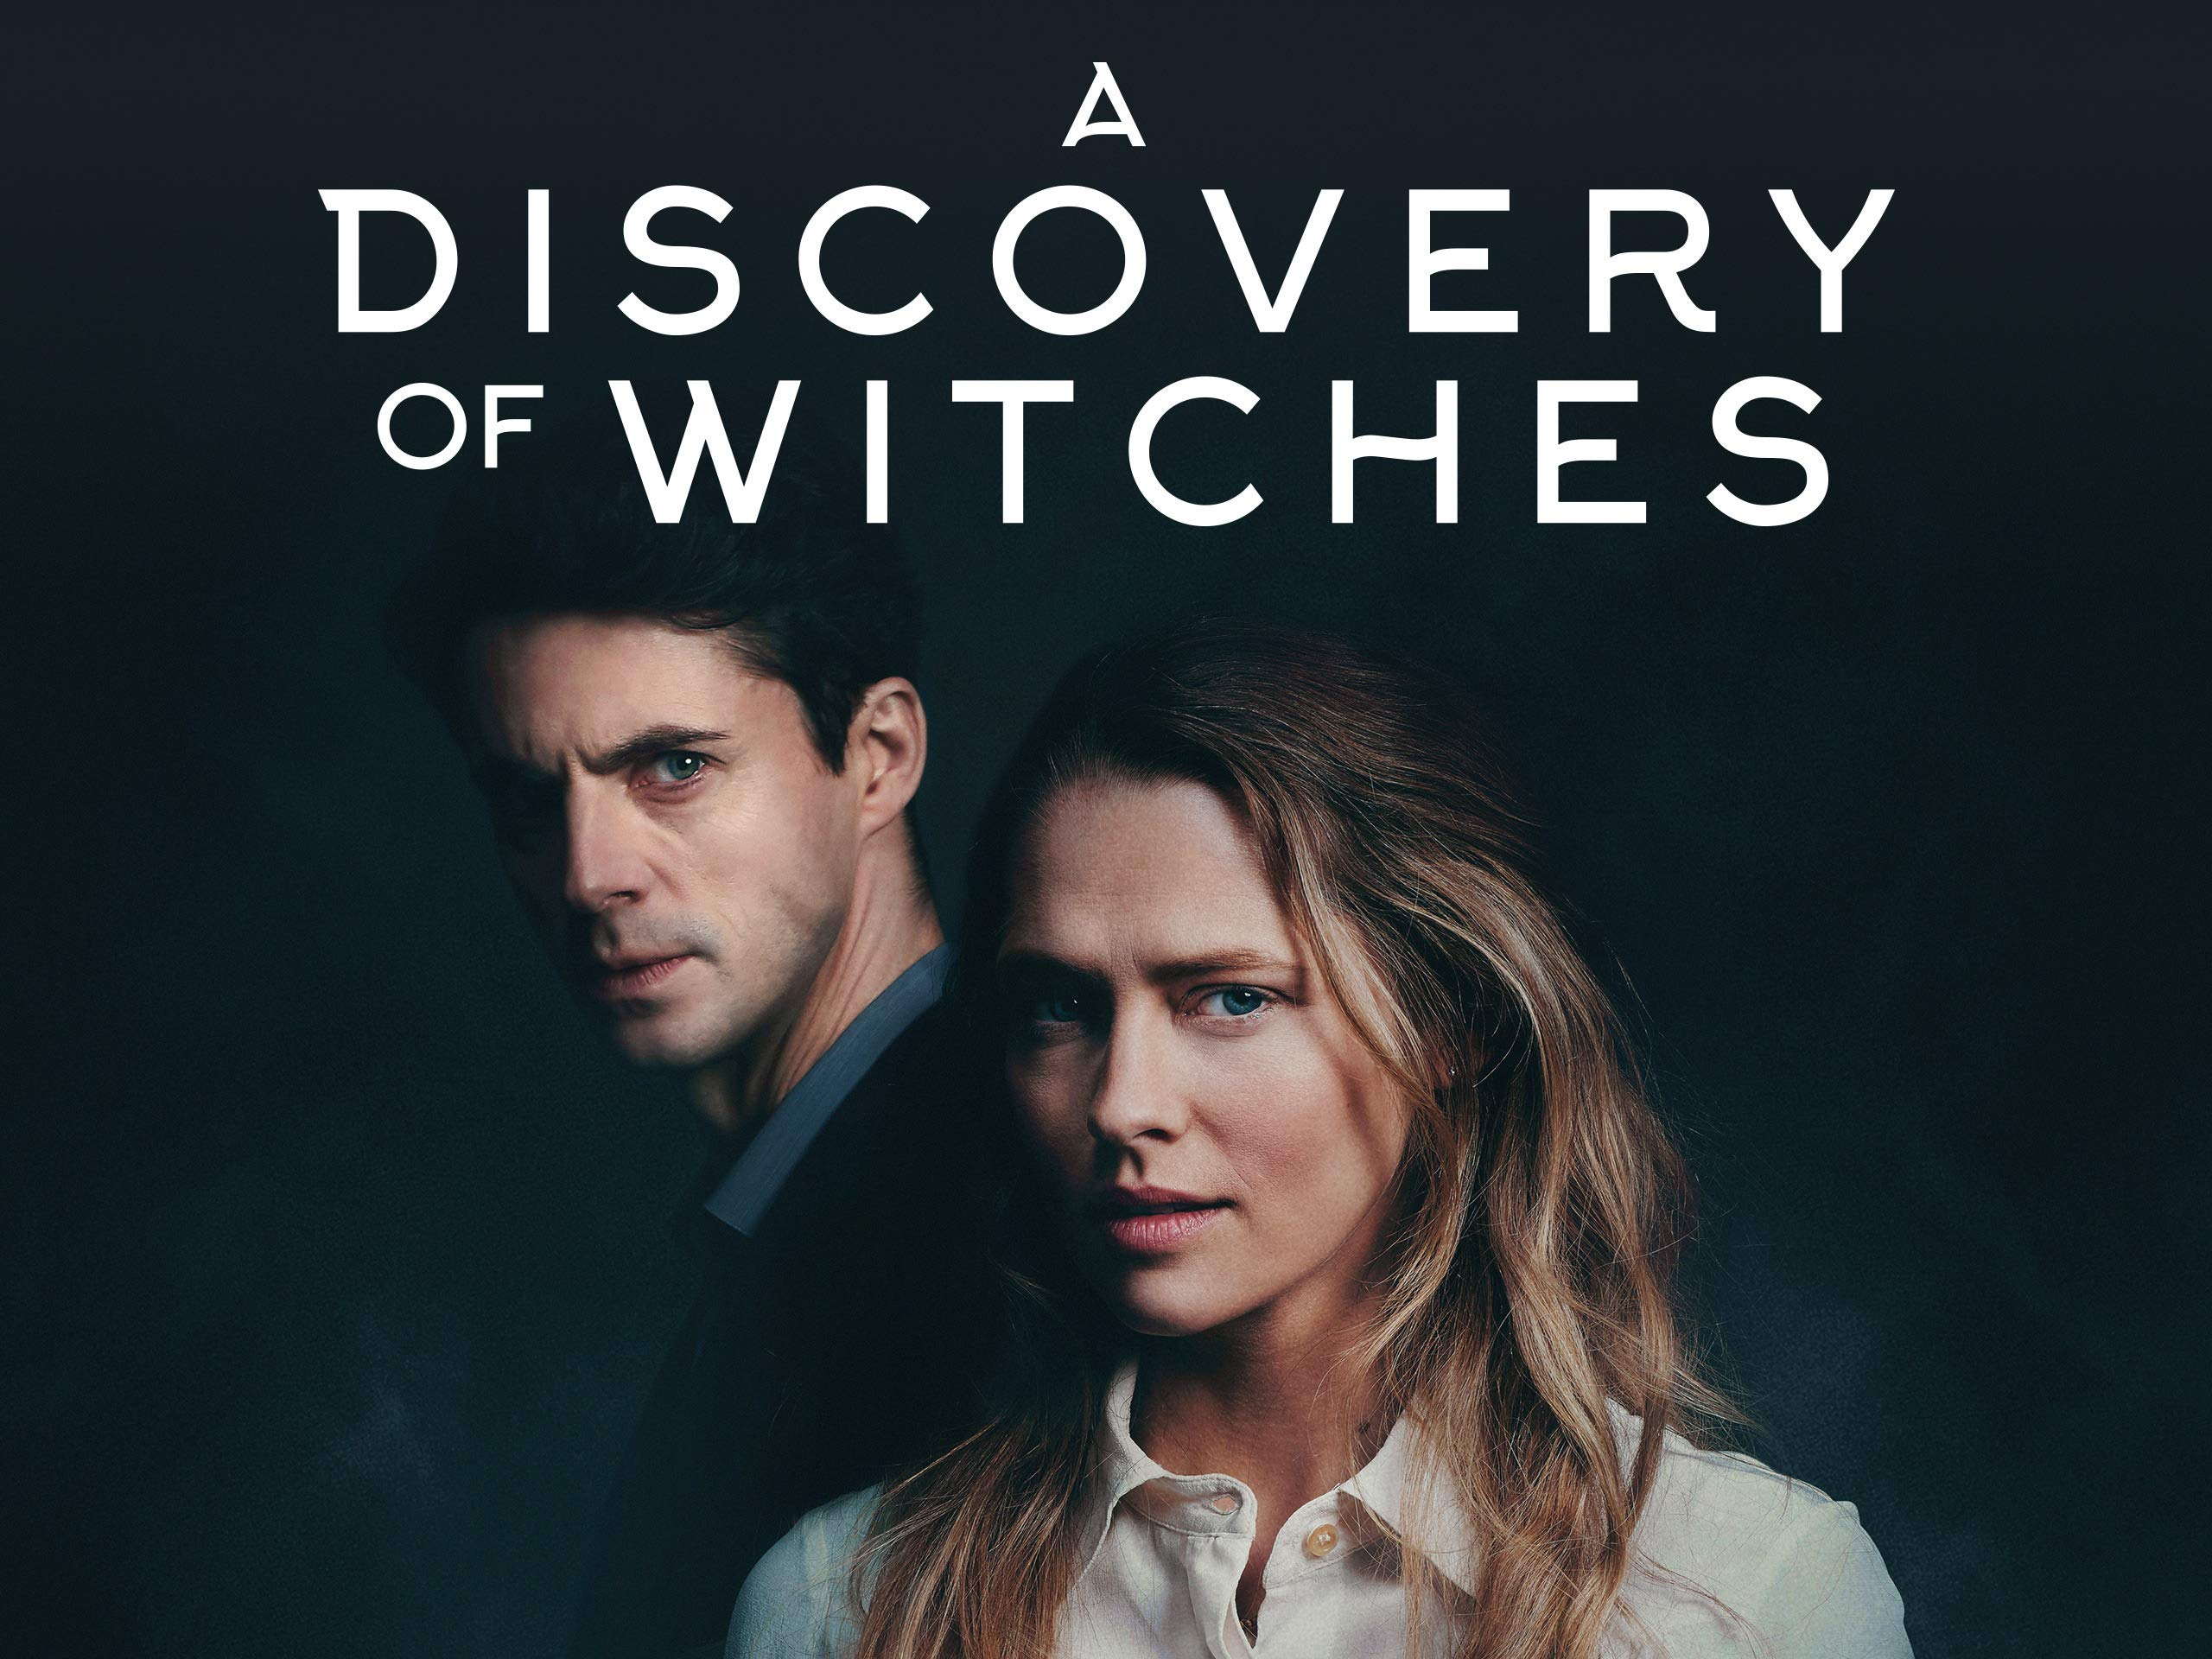 Amazon co uk: Watch A Discovery of Witches | Prime Video